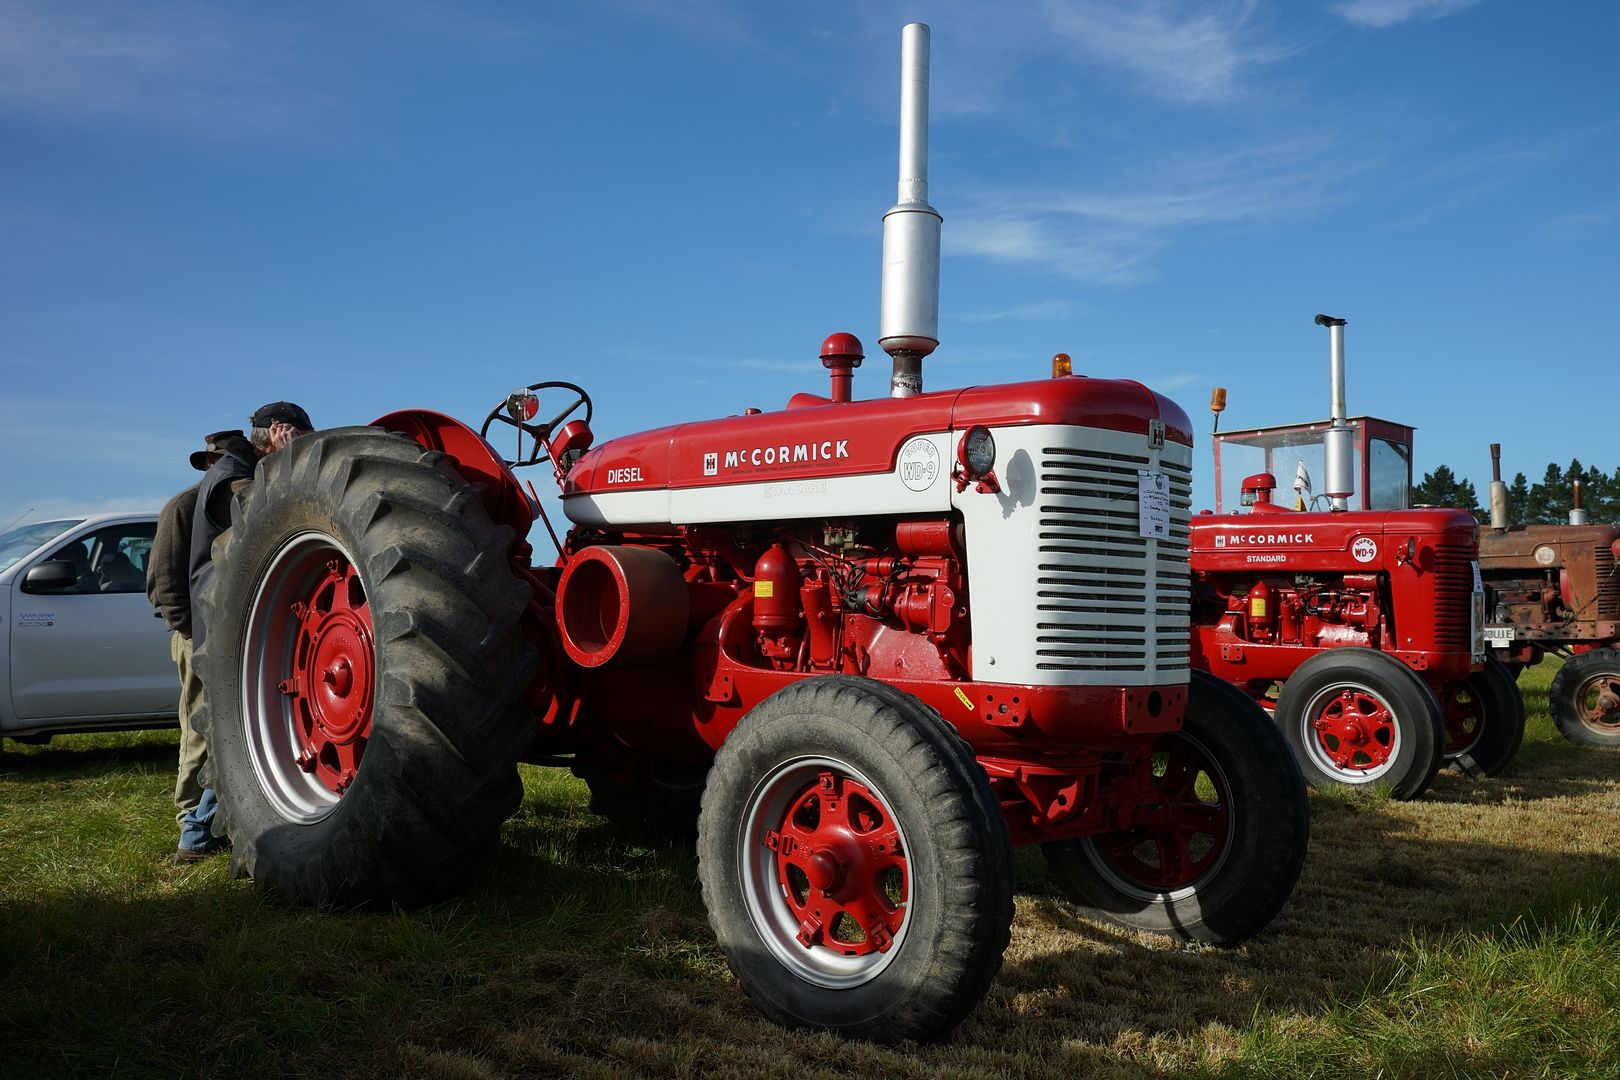 Mccormick Deering Super Wd 9 Specifications Farmall Tractors